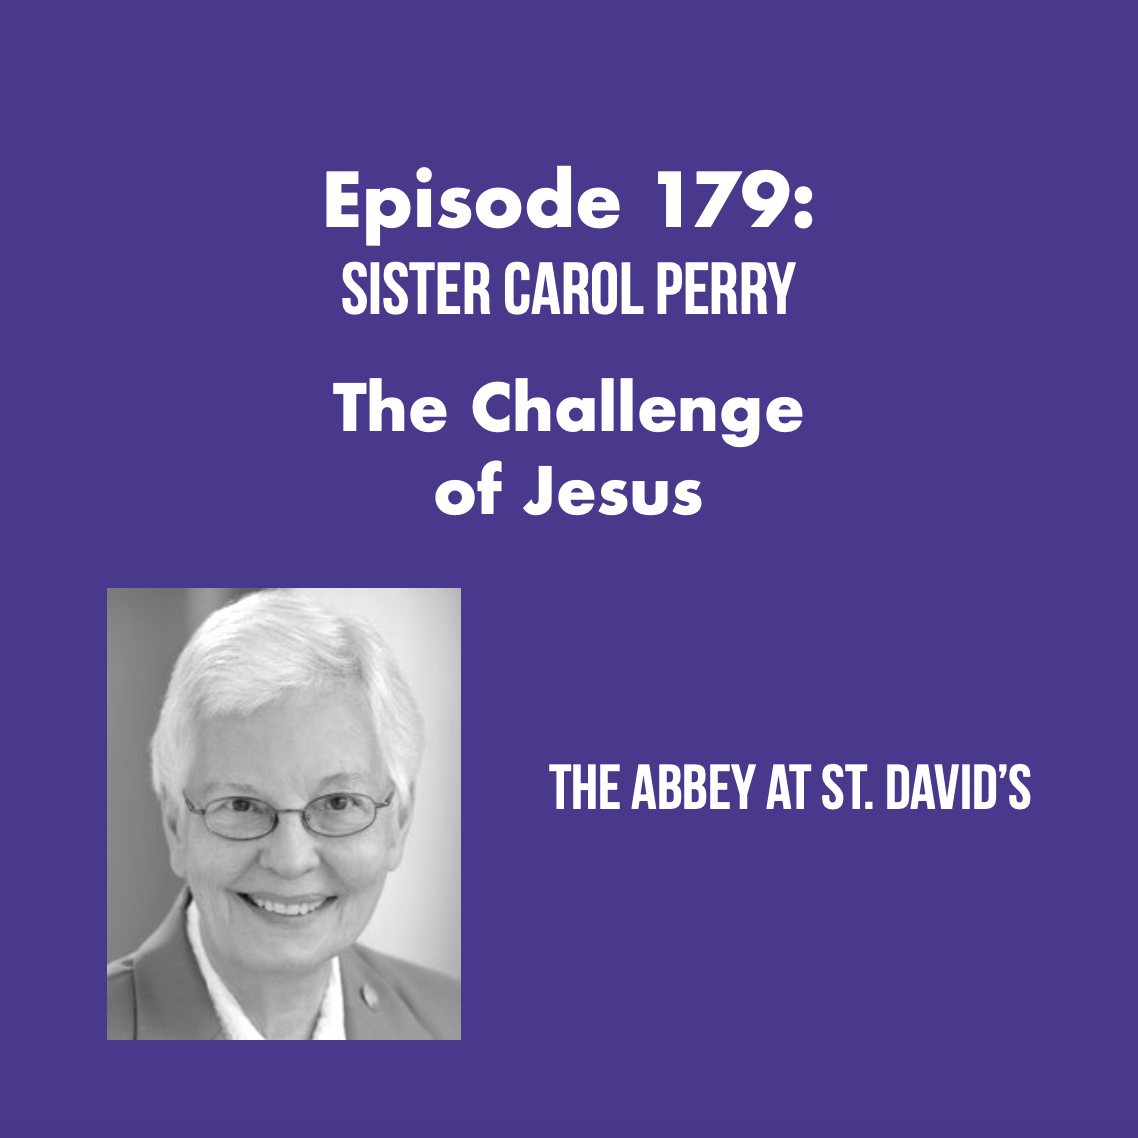 Episode 179: The Challenge of Jesus with Sister Carol Perry